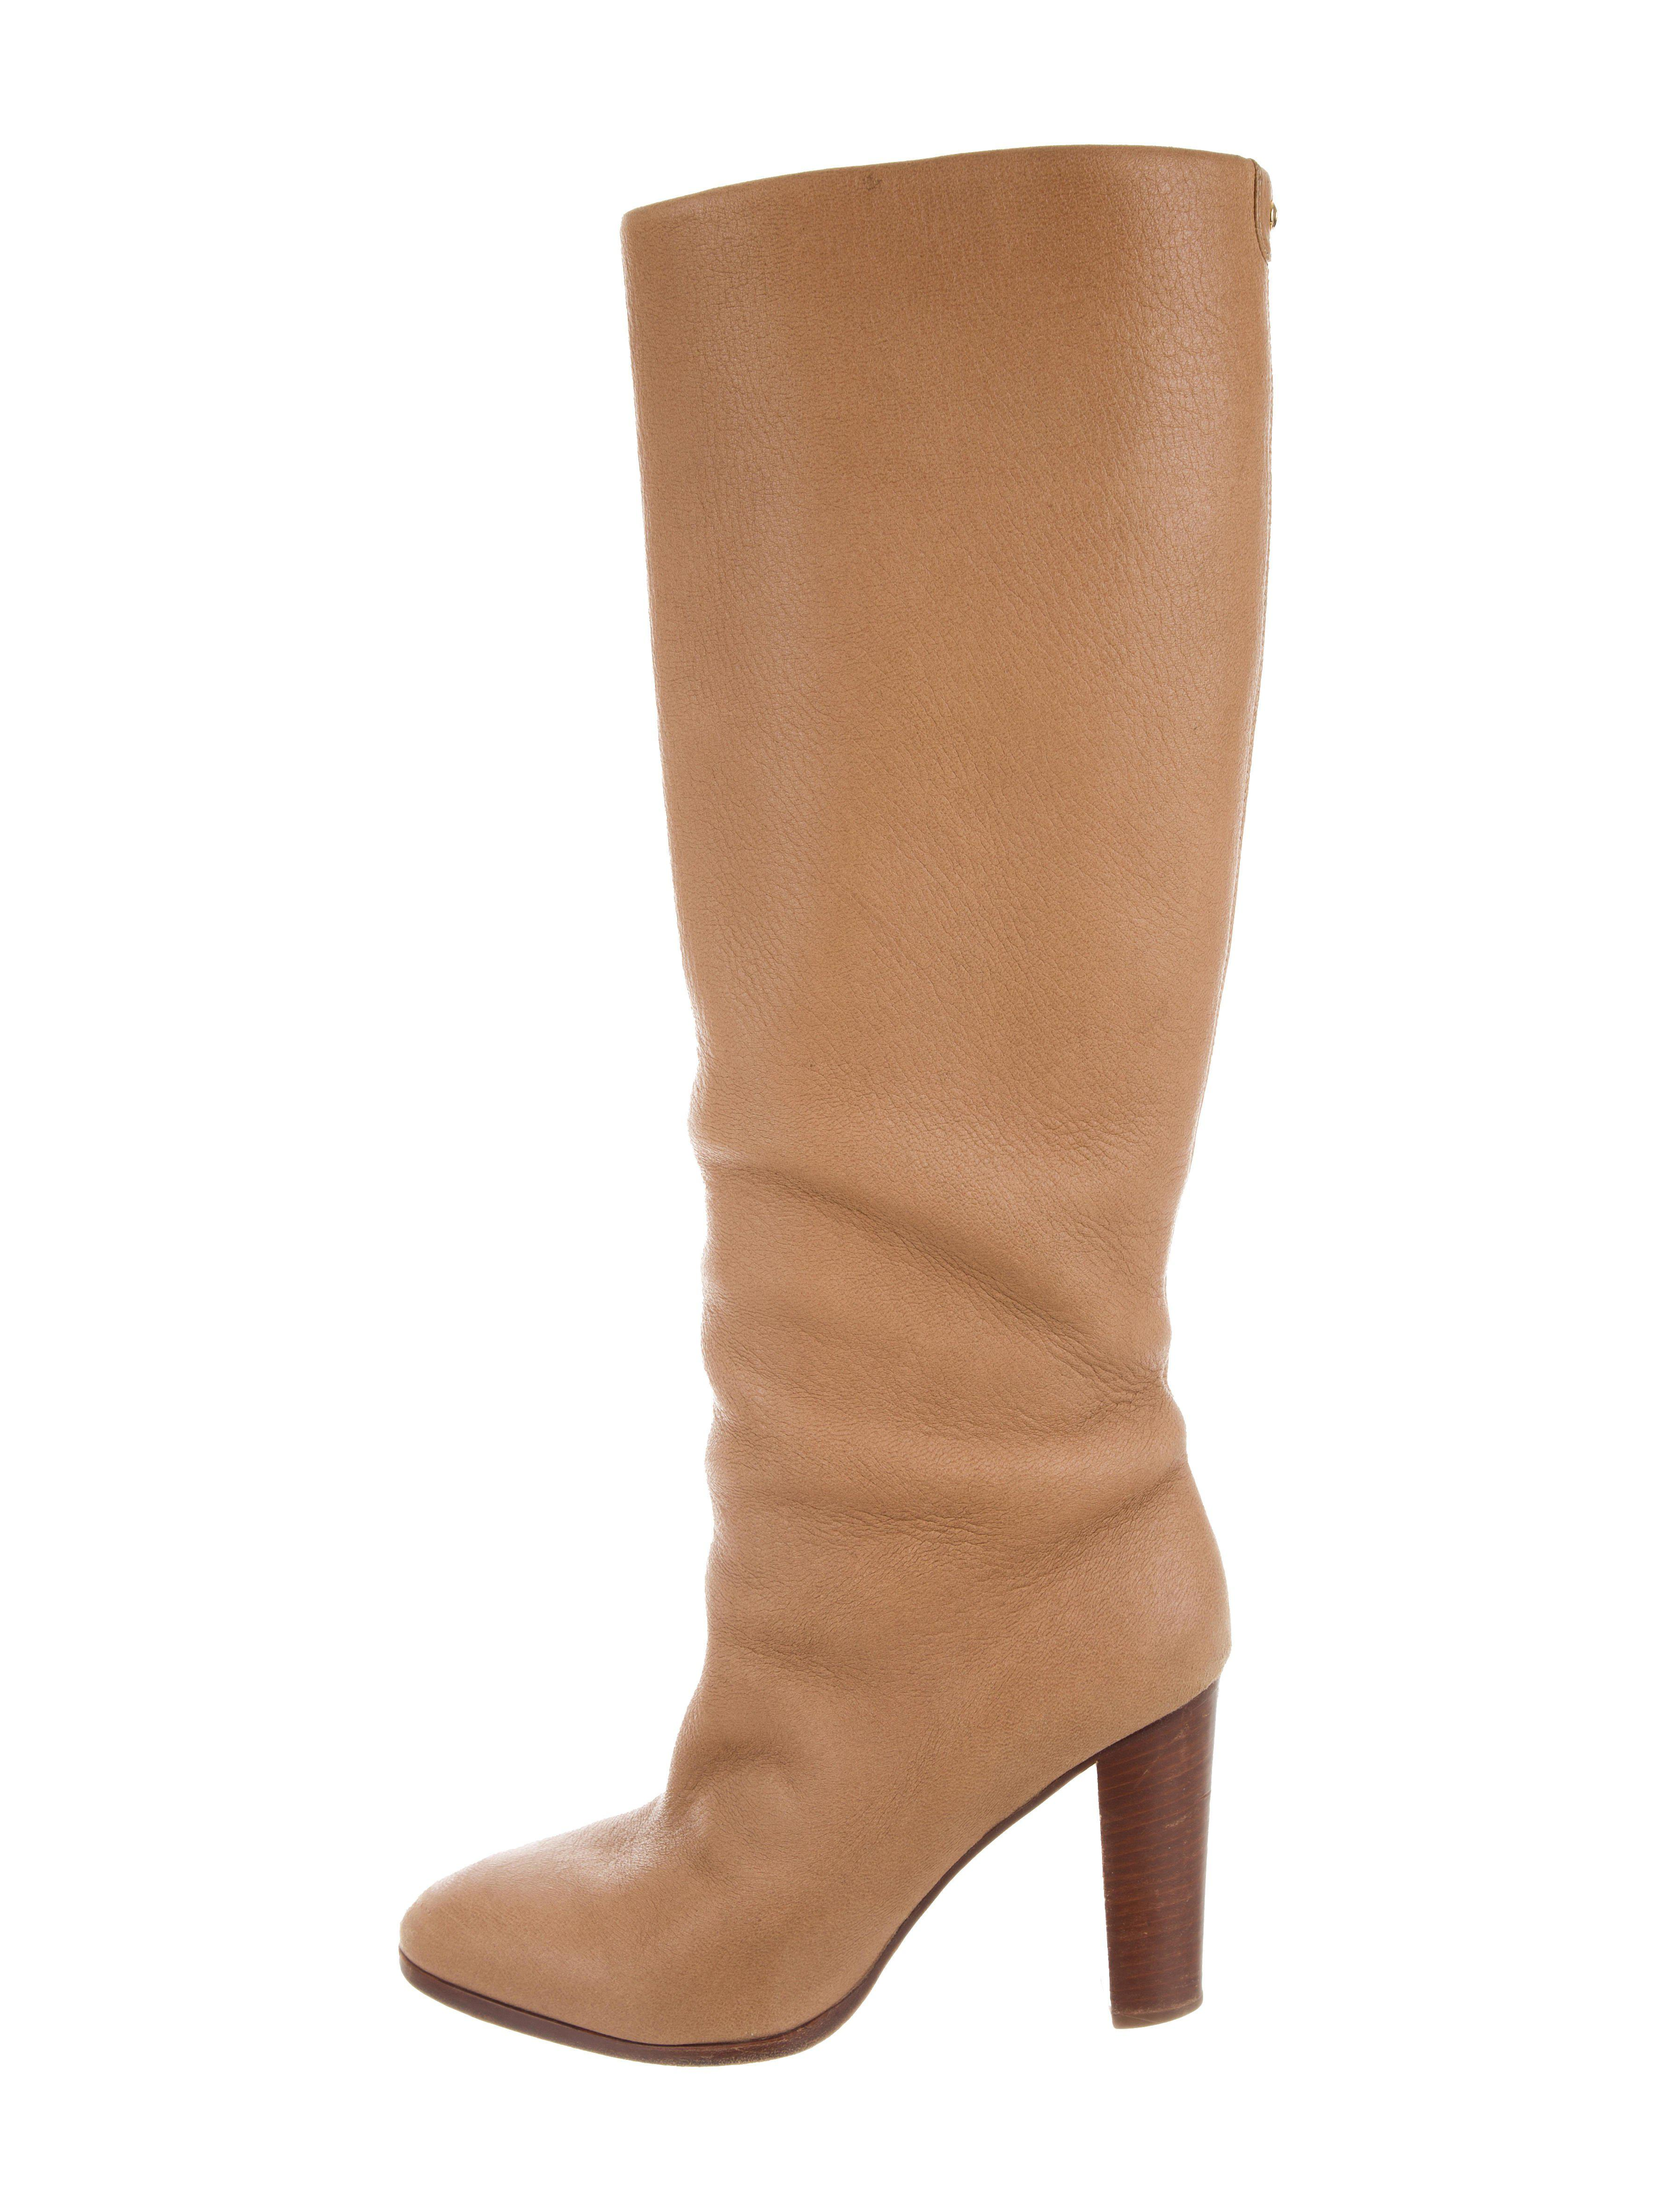 Loro Piana Suede Knee-High Boots sale shop offer XjOOb58bE